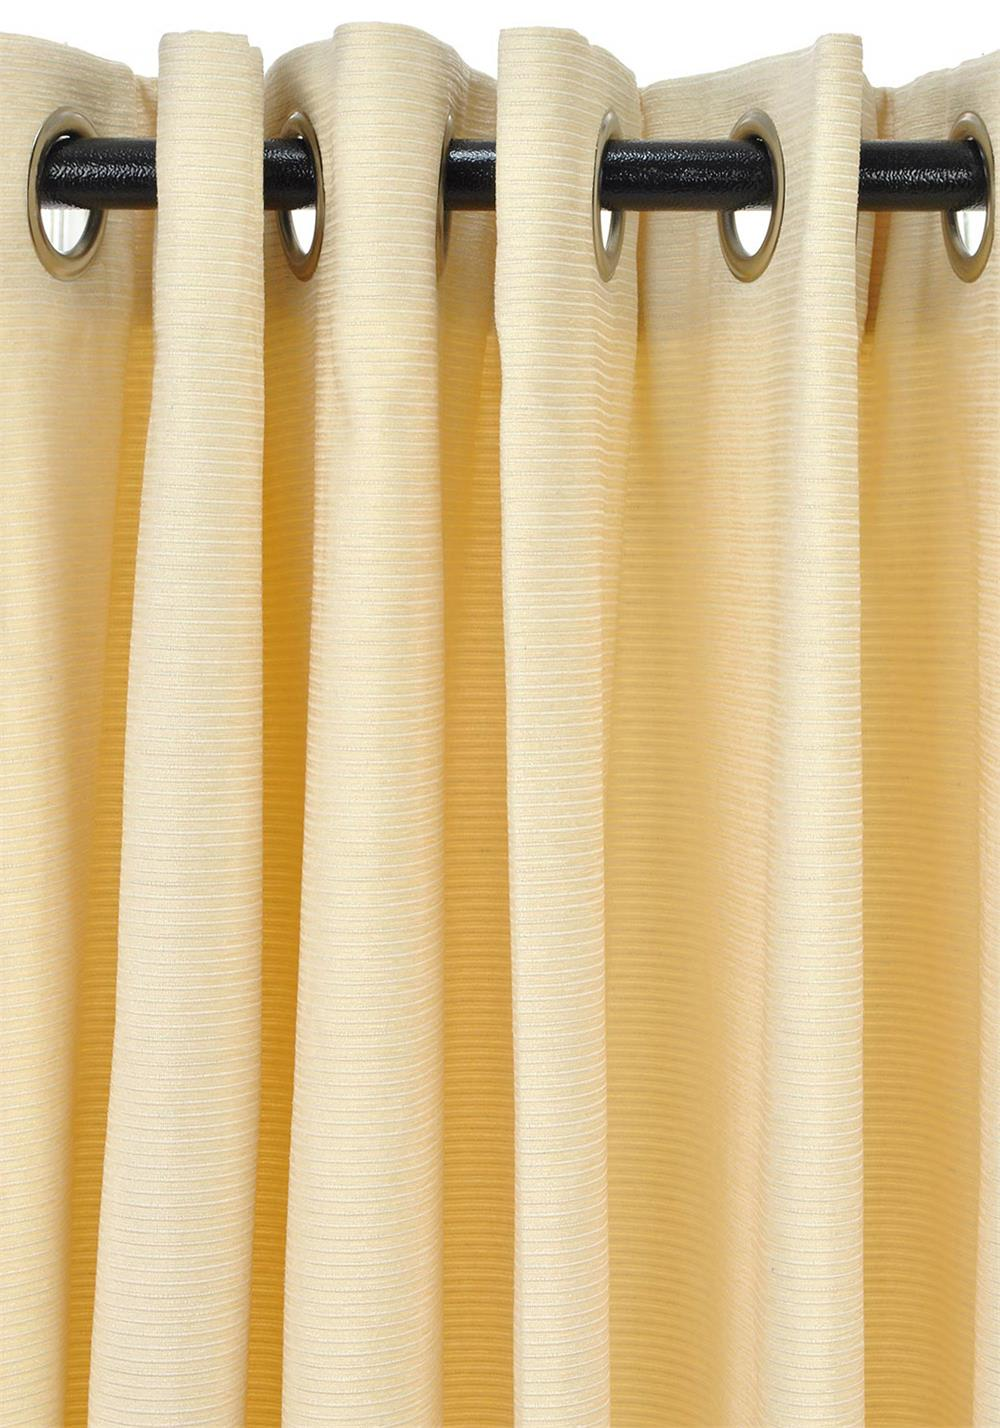 i-Style Sateen Lined Readymade Eyelet Curtains, Lagos Champagne